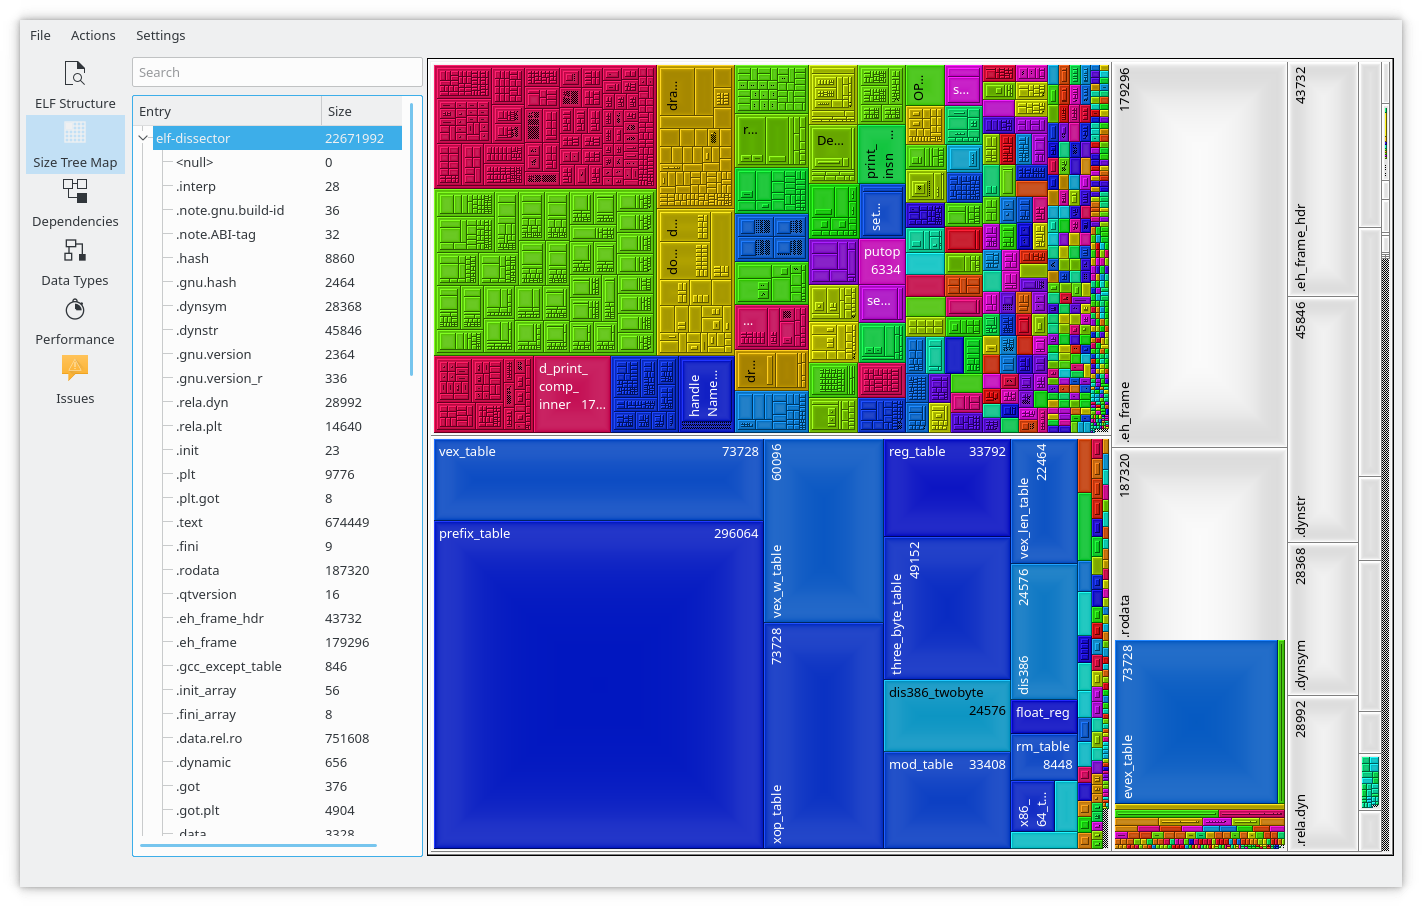 Size treemap views